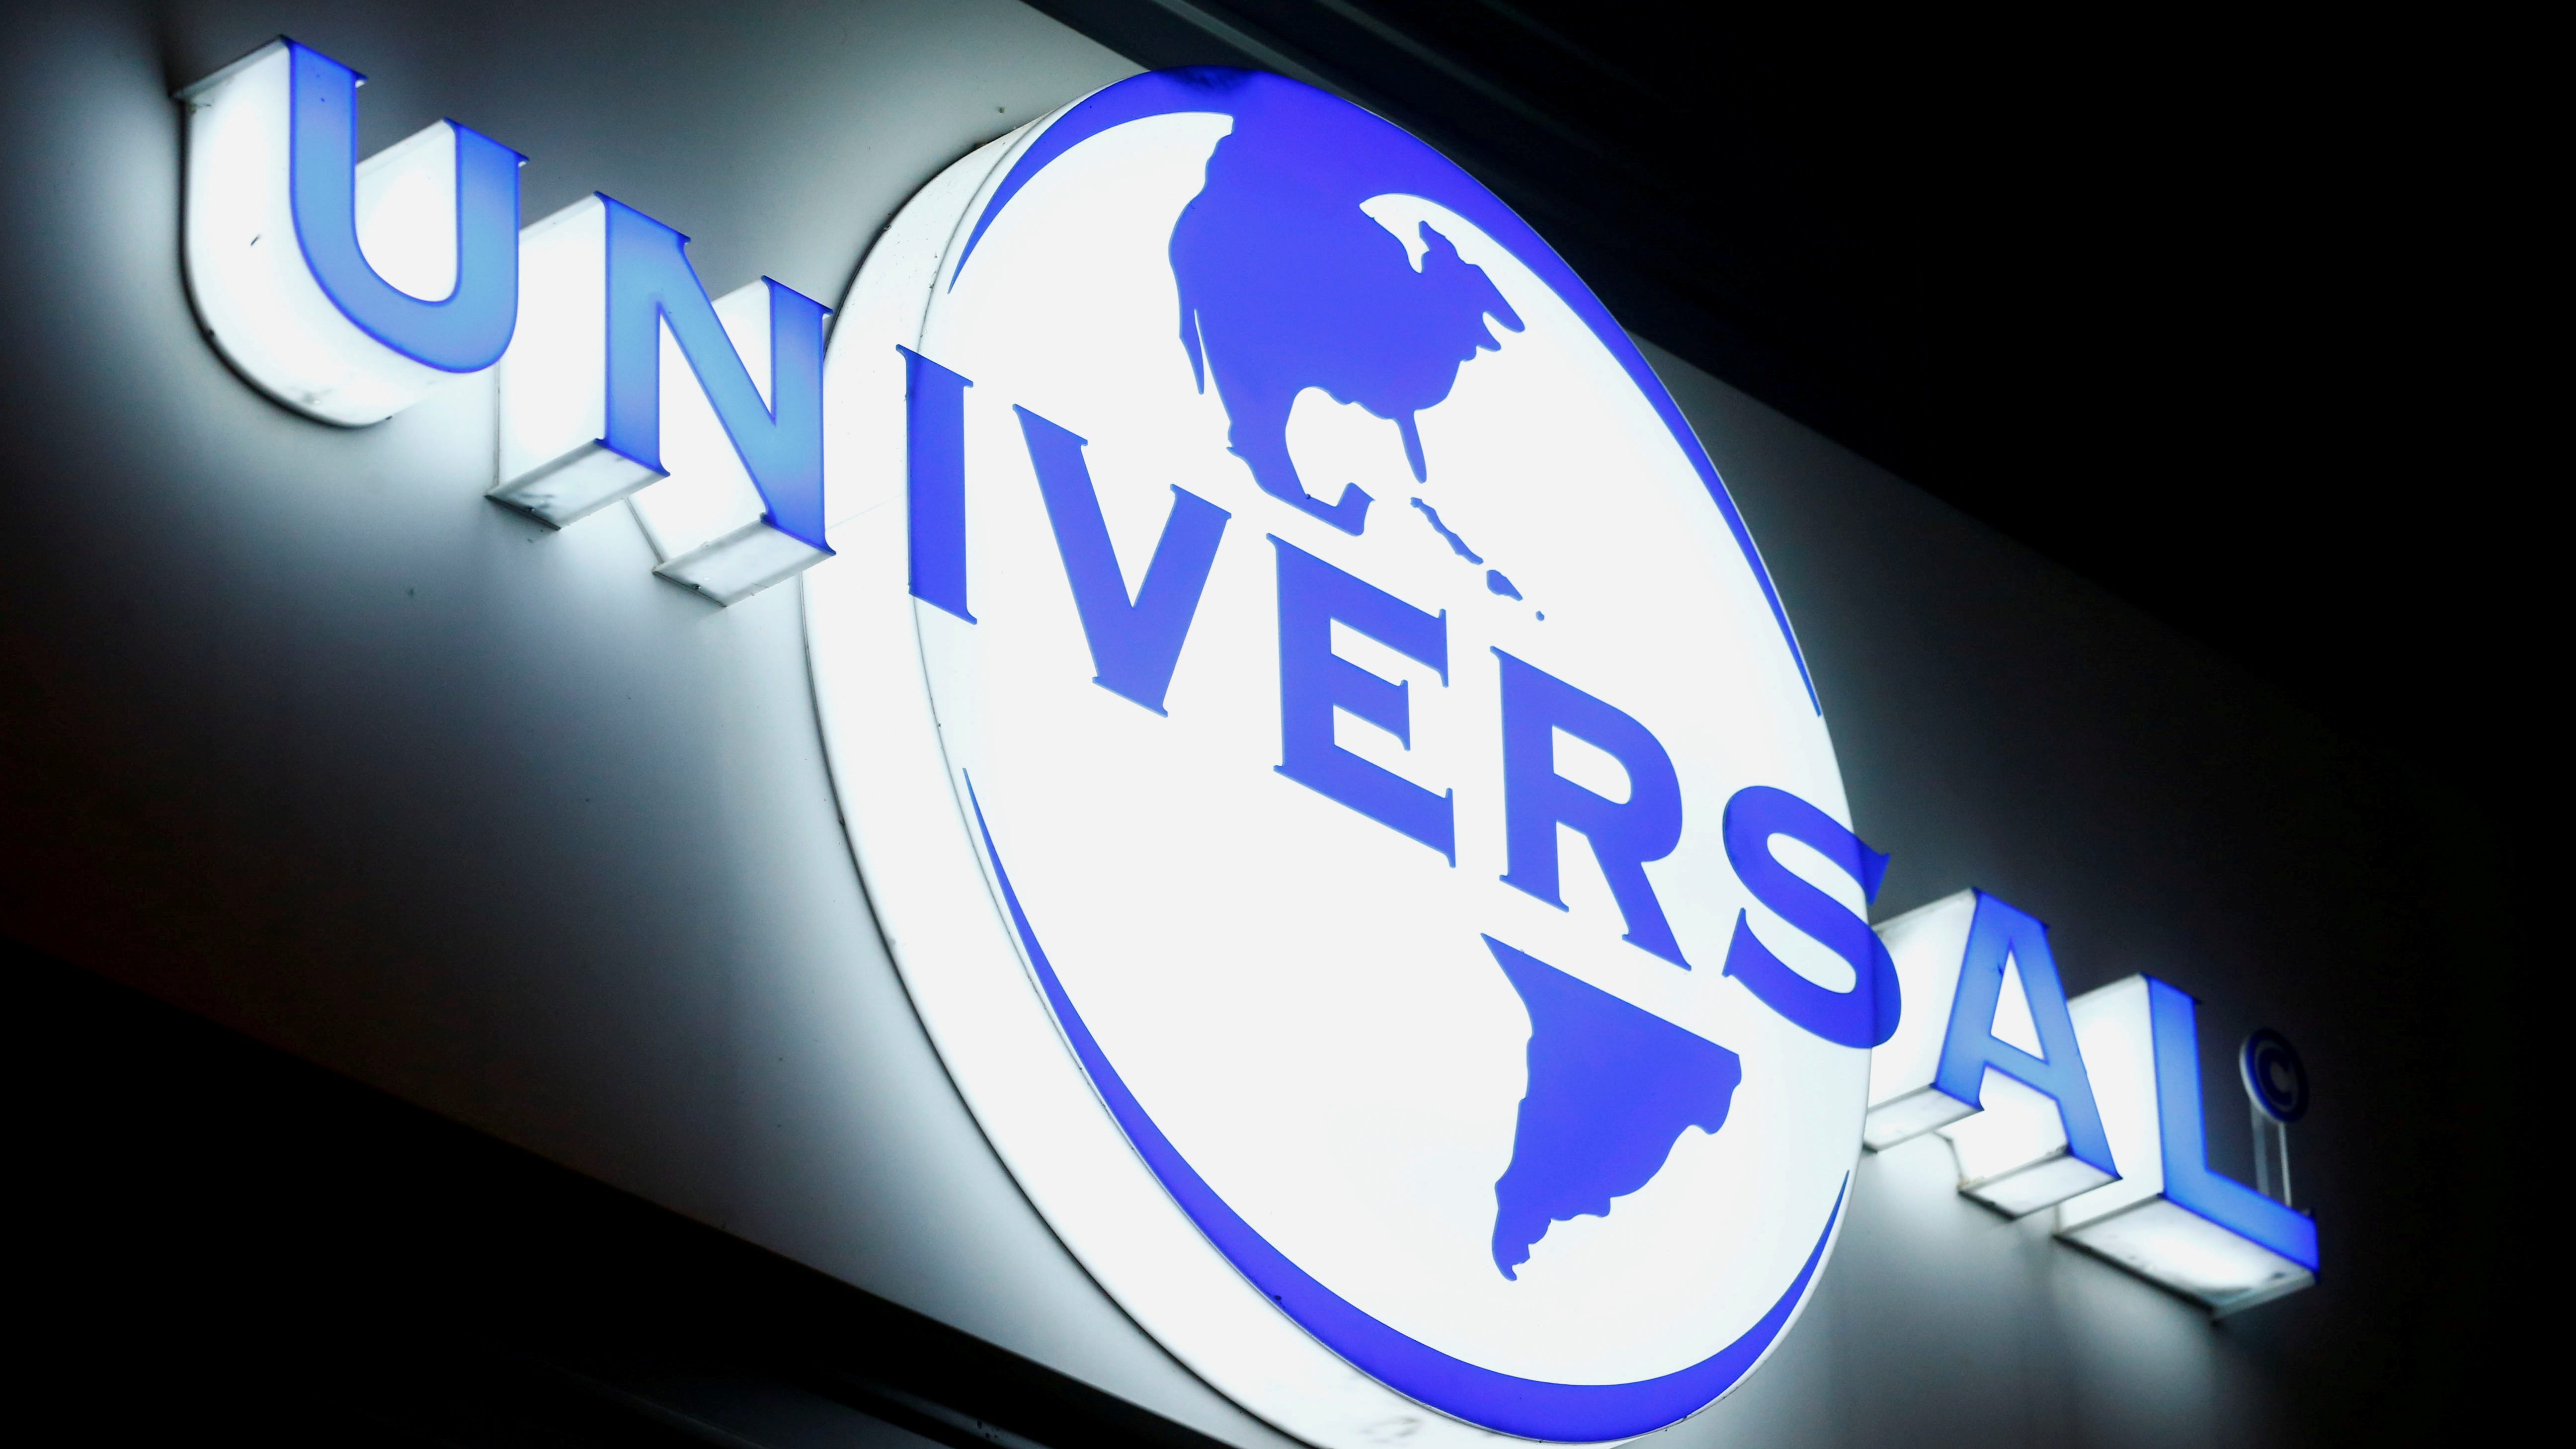 FILE PHOTO: The logo of Universal Music Group (UMG) is seen at a building in Zurich, Switzerland July 20, 2021.